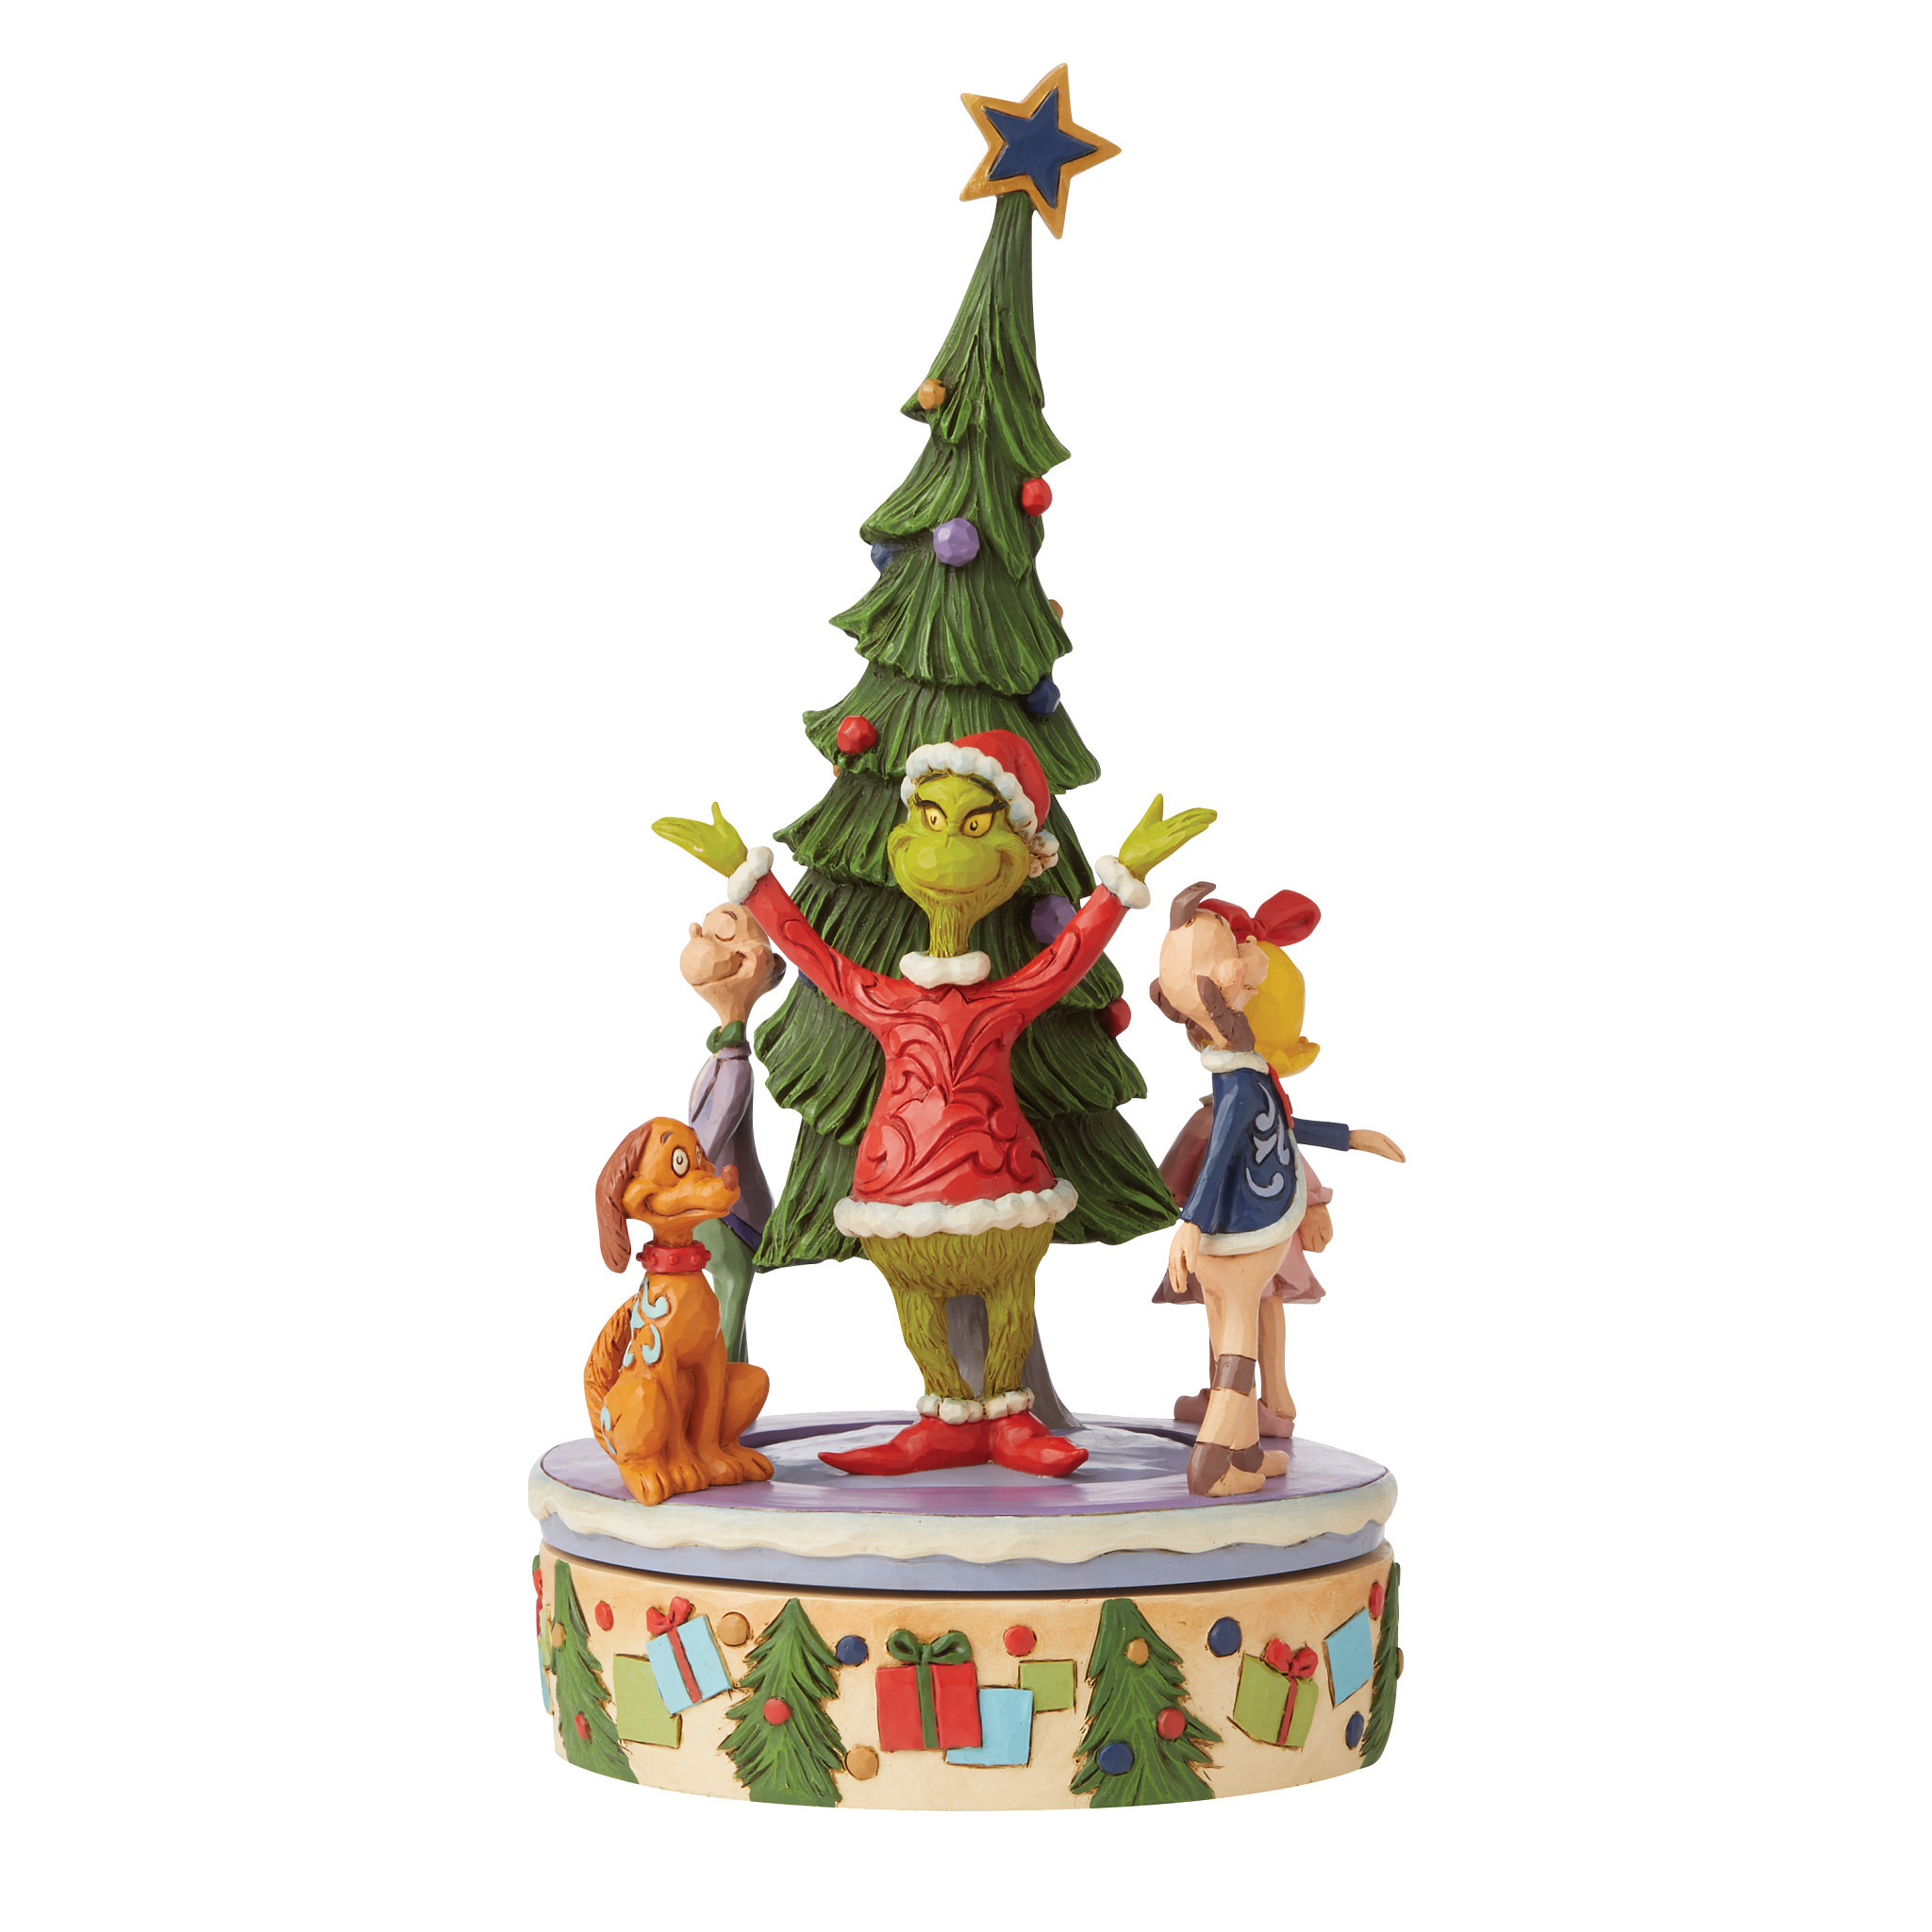 Jim Shore - Figurines 'Grinch Rotator with Whos N' 2021